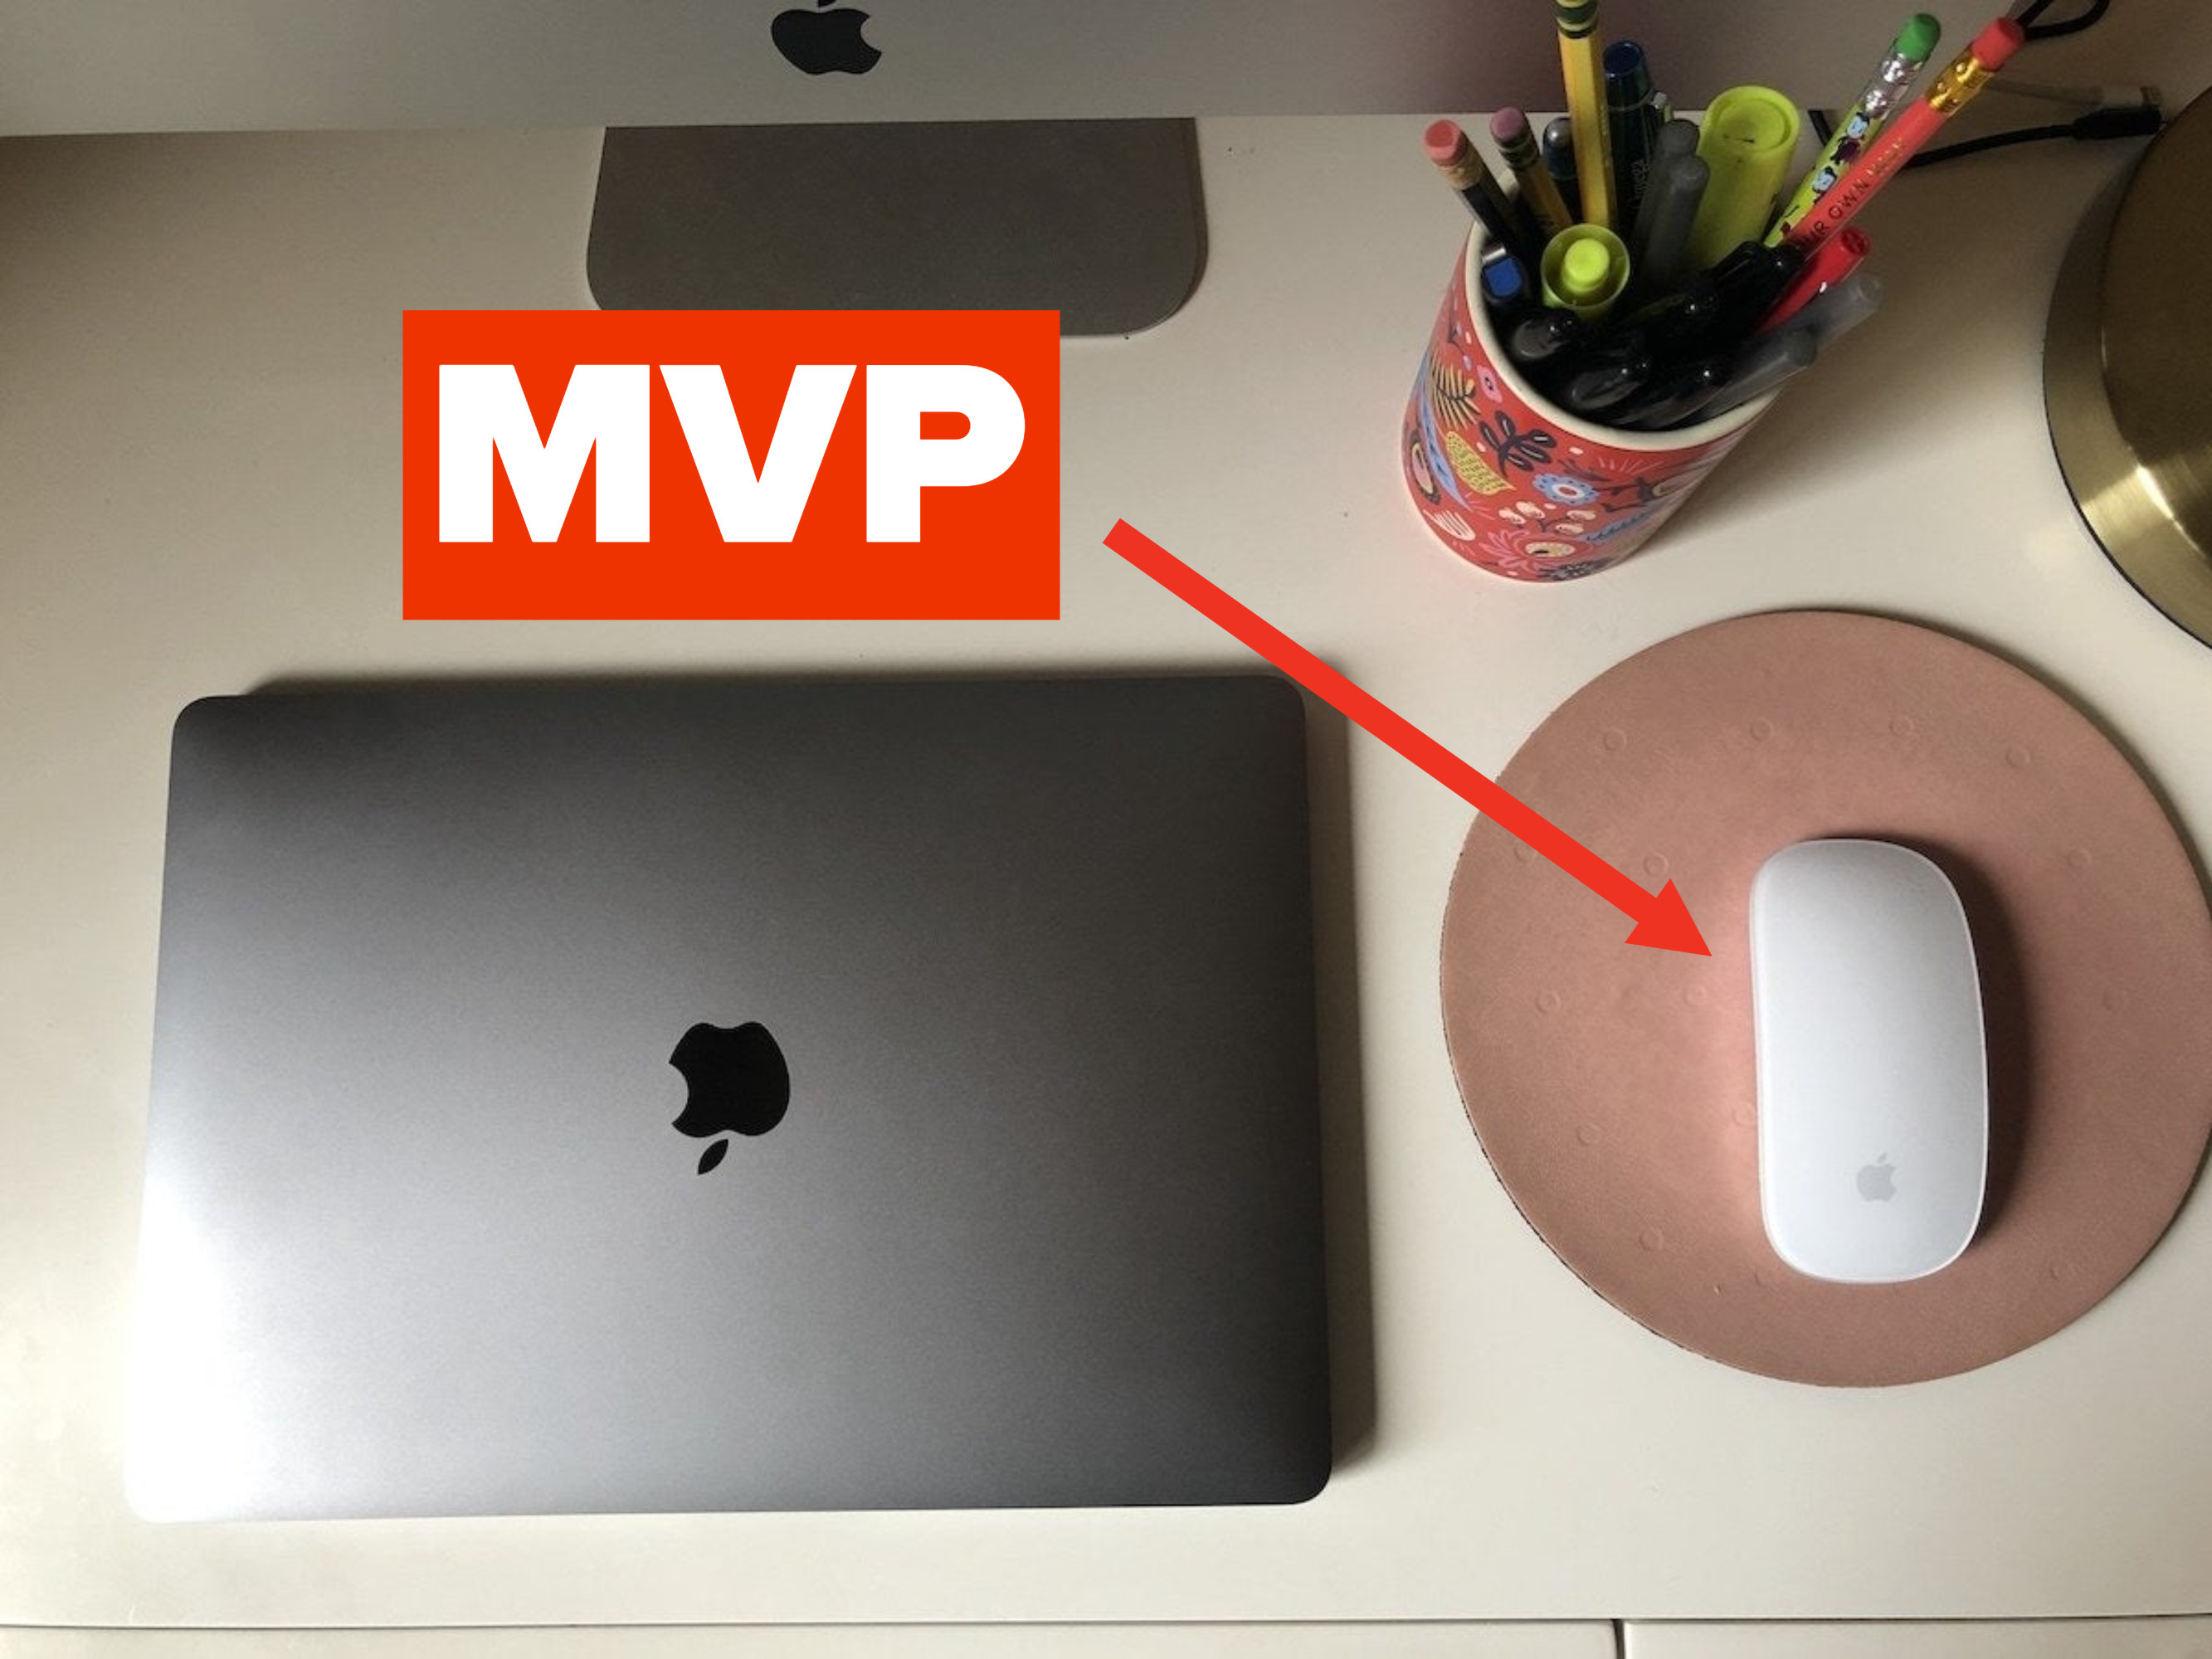 A wireless mouse next to a laptop